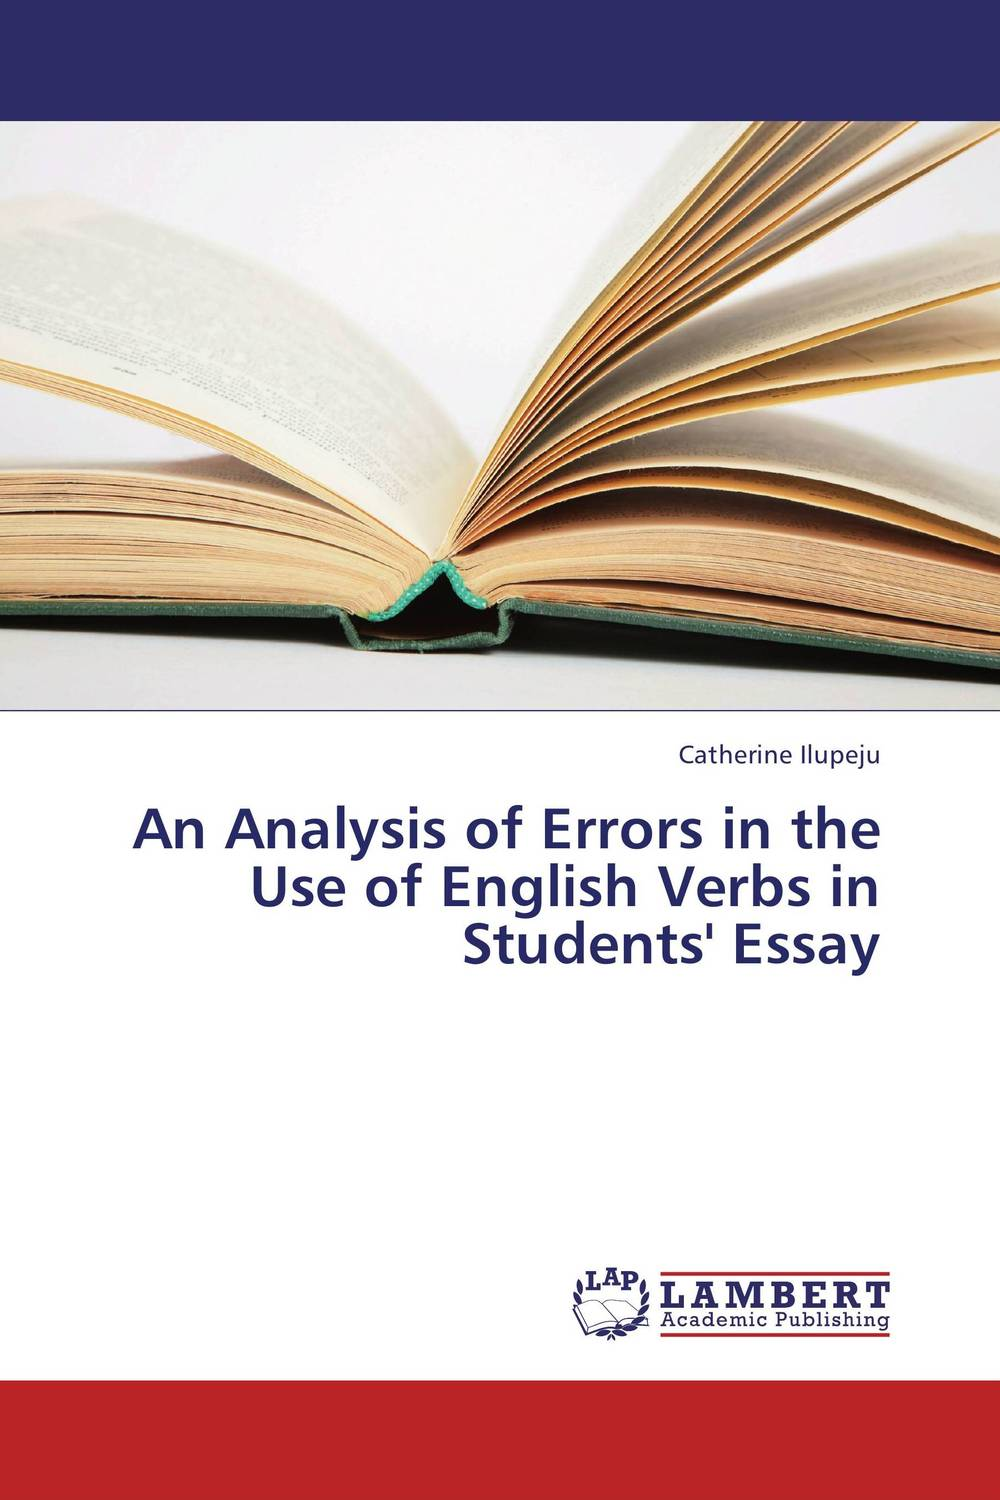 An Analysis of Errors in the Use of English Verbs in Students' Essay teacher s use of english coursebooks with primary school learners